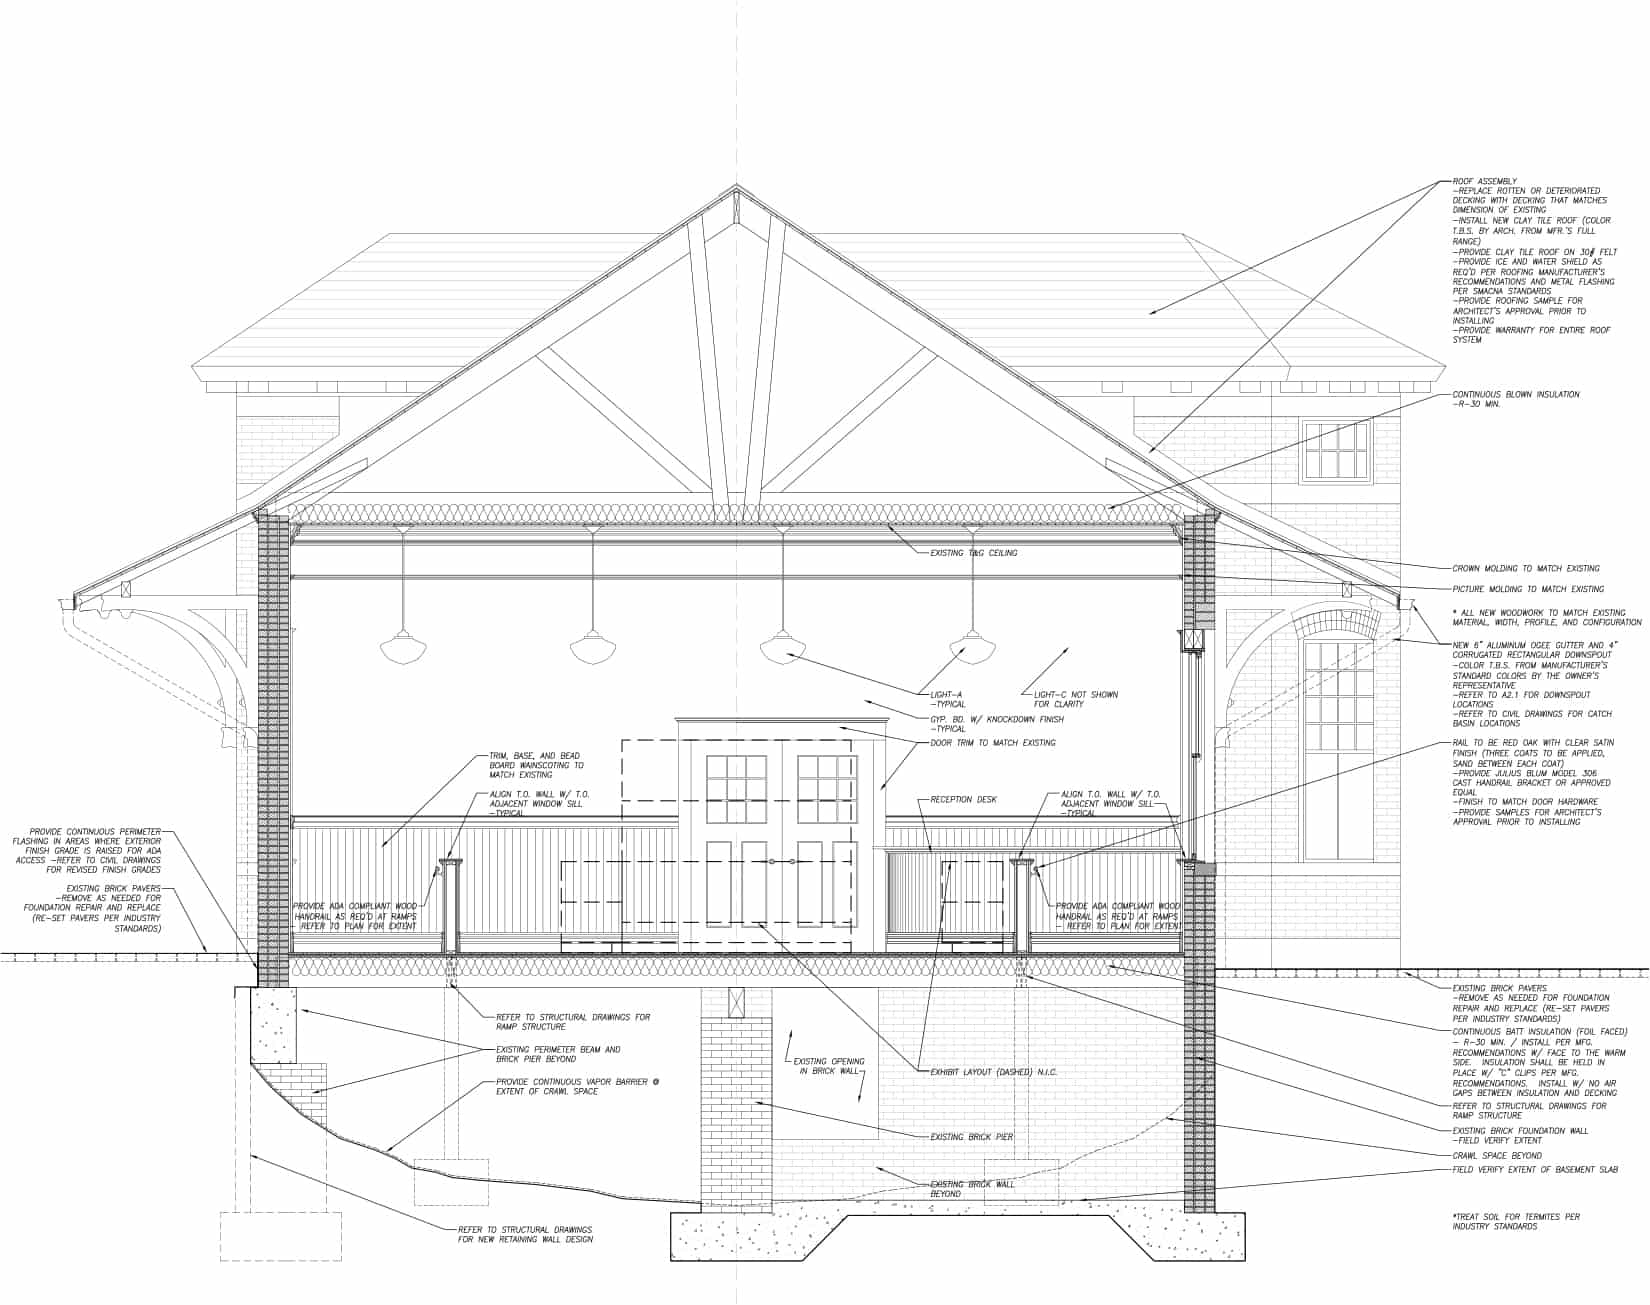 P:\Projects\2009\09-025 SETHRA Cleveland Train Depot\Drawings\09